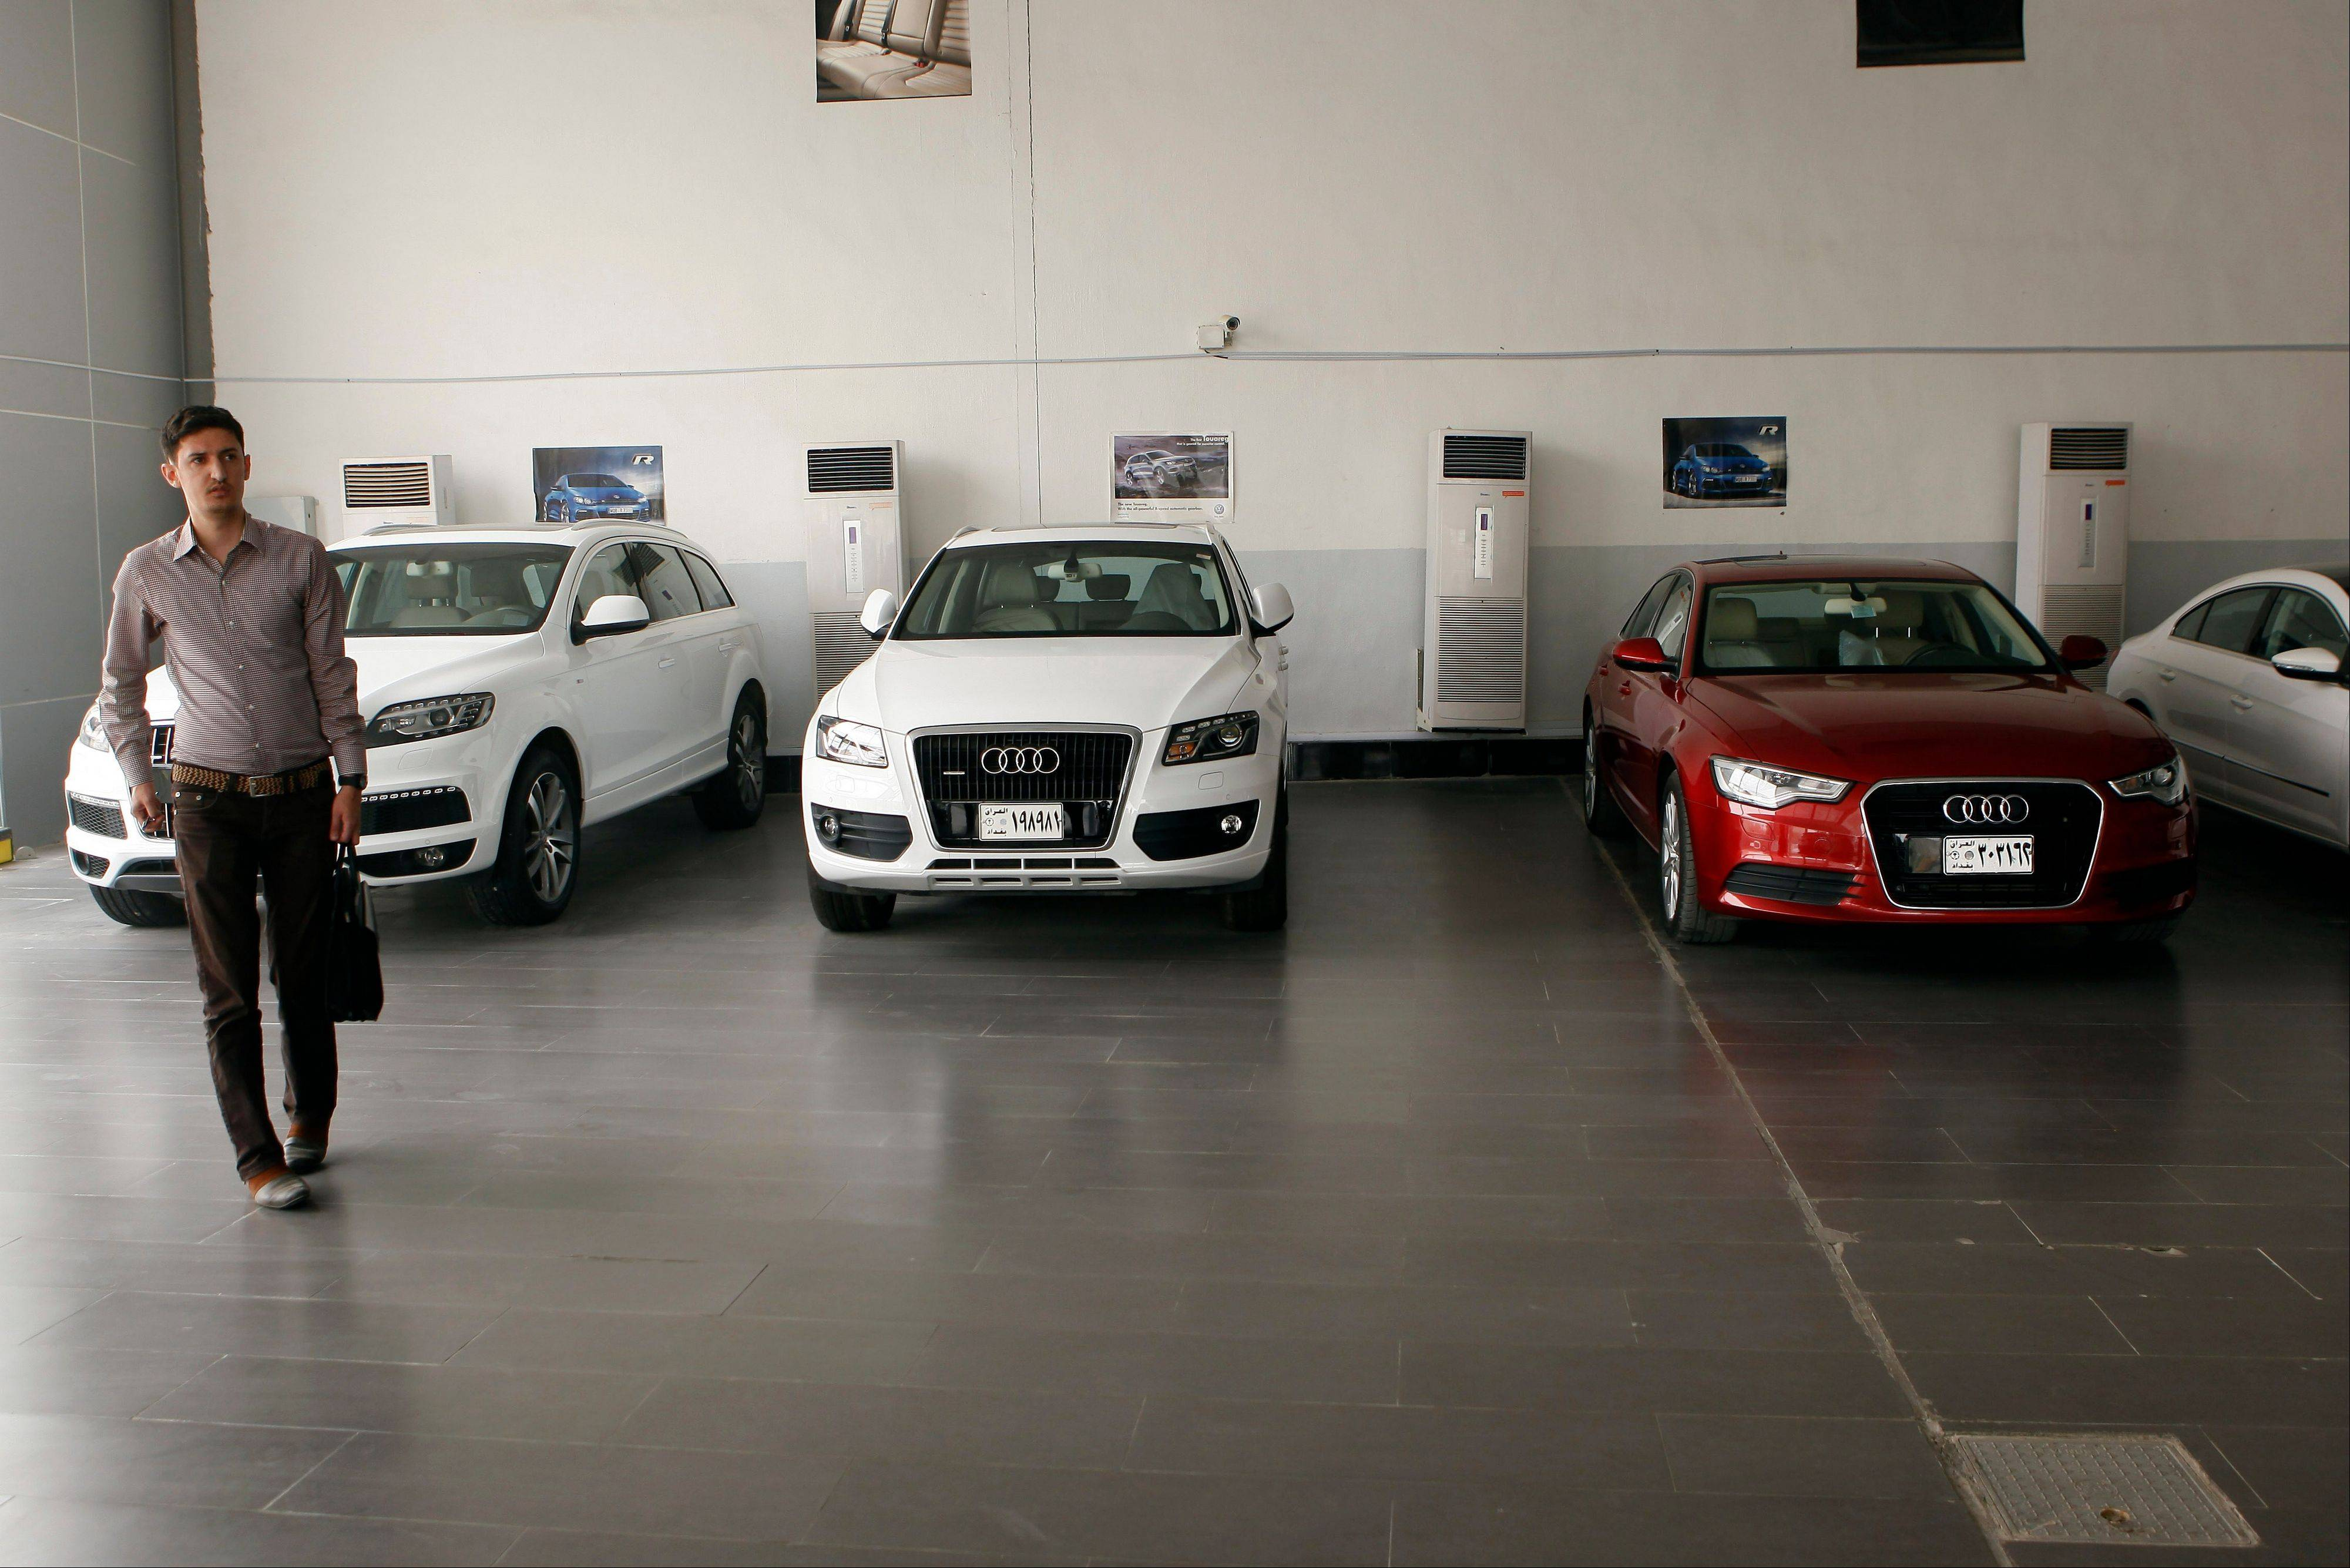 New Audi cars are seen at an automobile dealer in Baghdad, Iraq. A spike in violence is spilling over to Iraq�s struggling economy, with an increasingly murky future making customers reluctant to spend and the re-emergence of sectarian threats forcing costly changes to the way business is done.